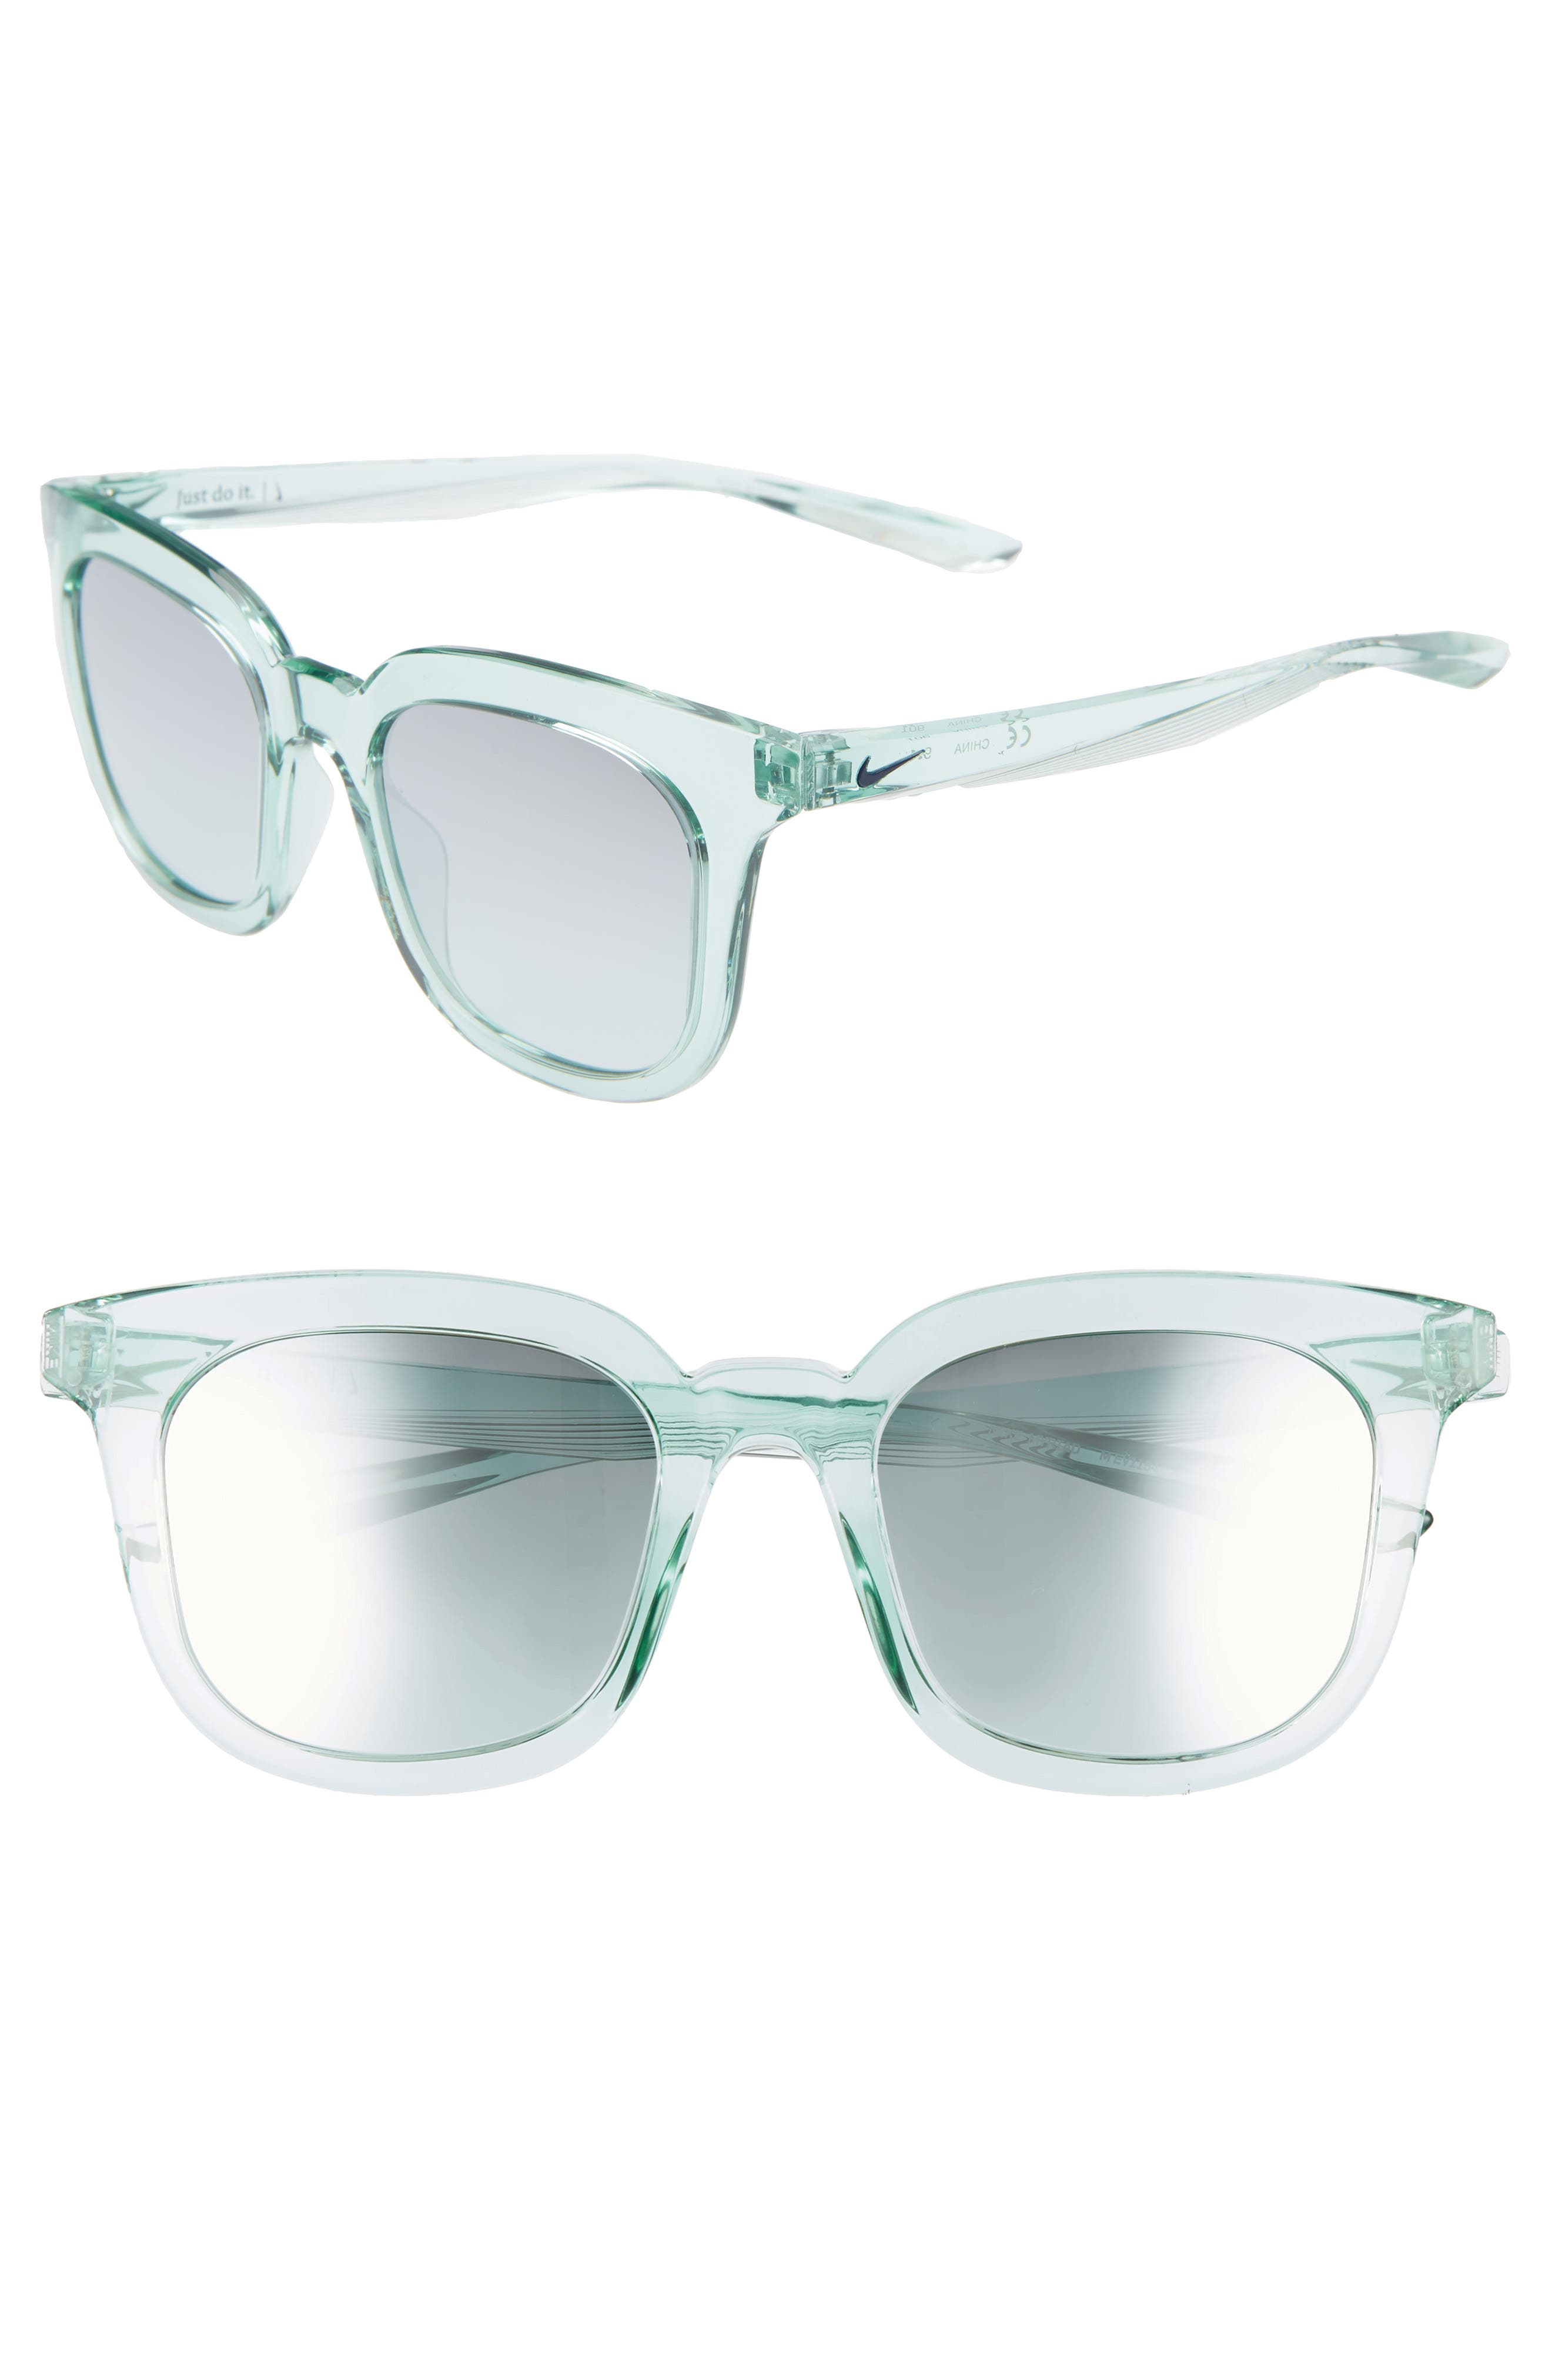 Nike Myriad 52Mm Mirrored Square Sunglasses - Igloo/ Gradient Teal